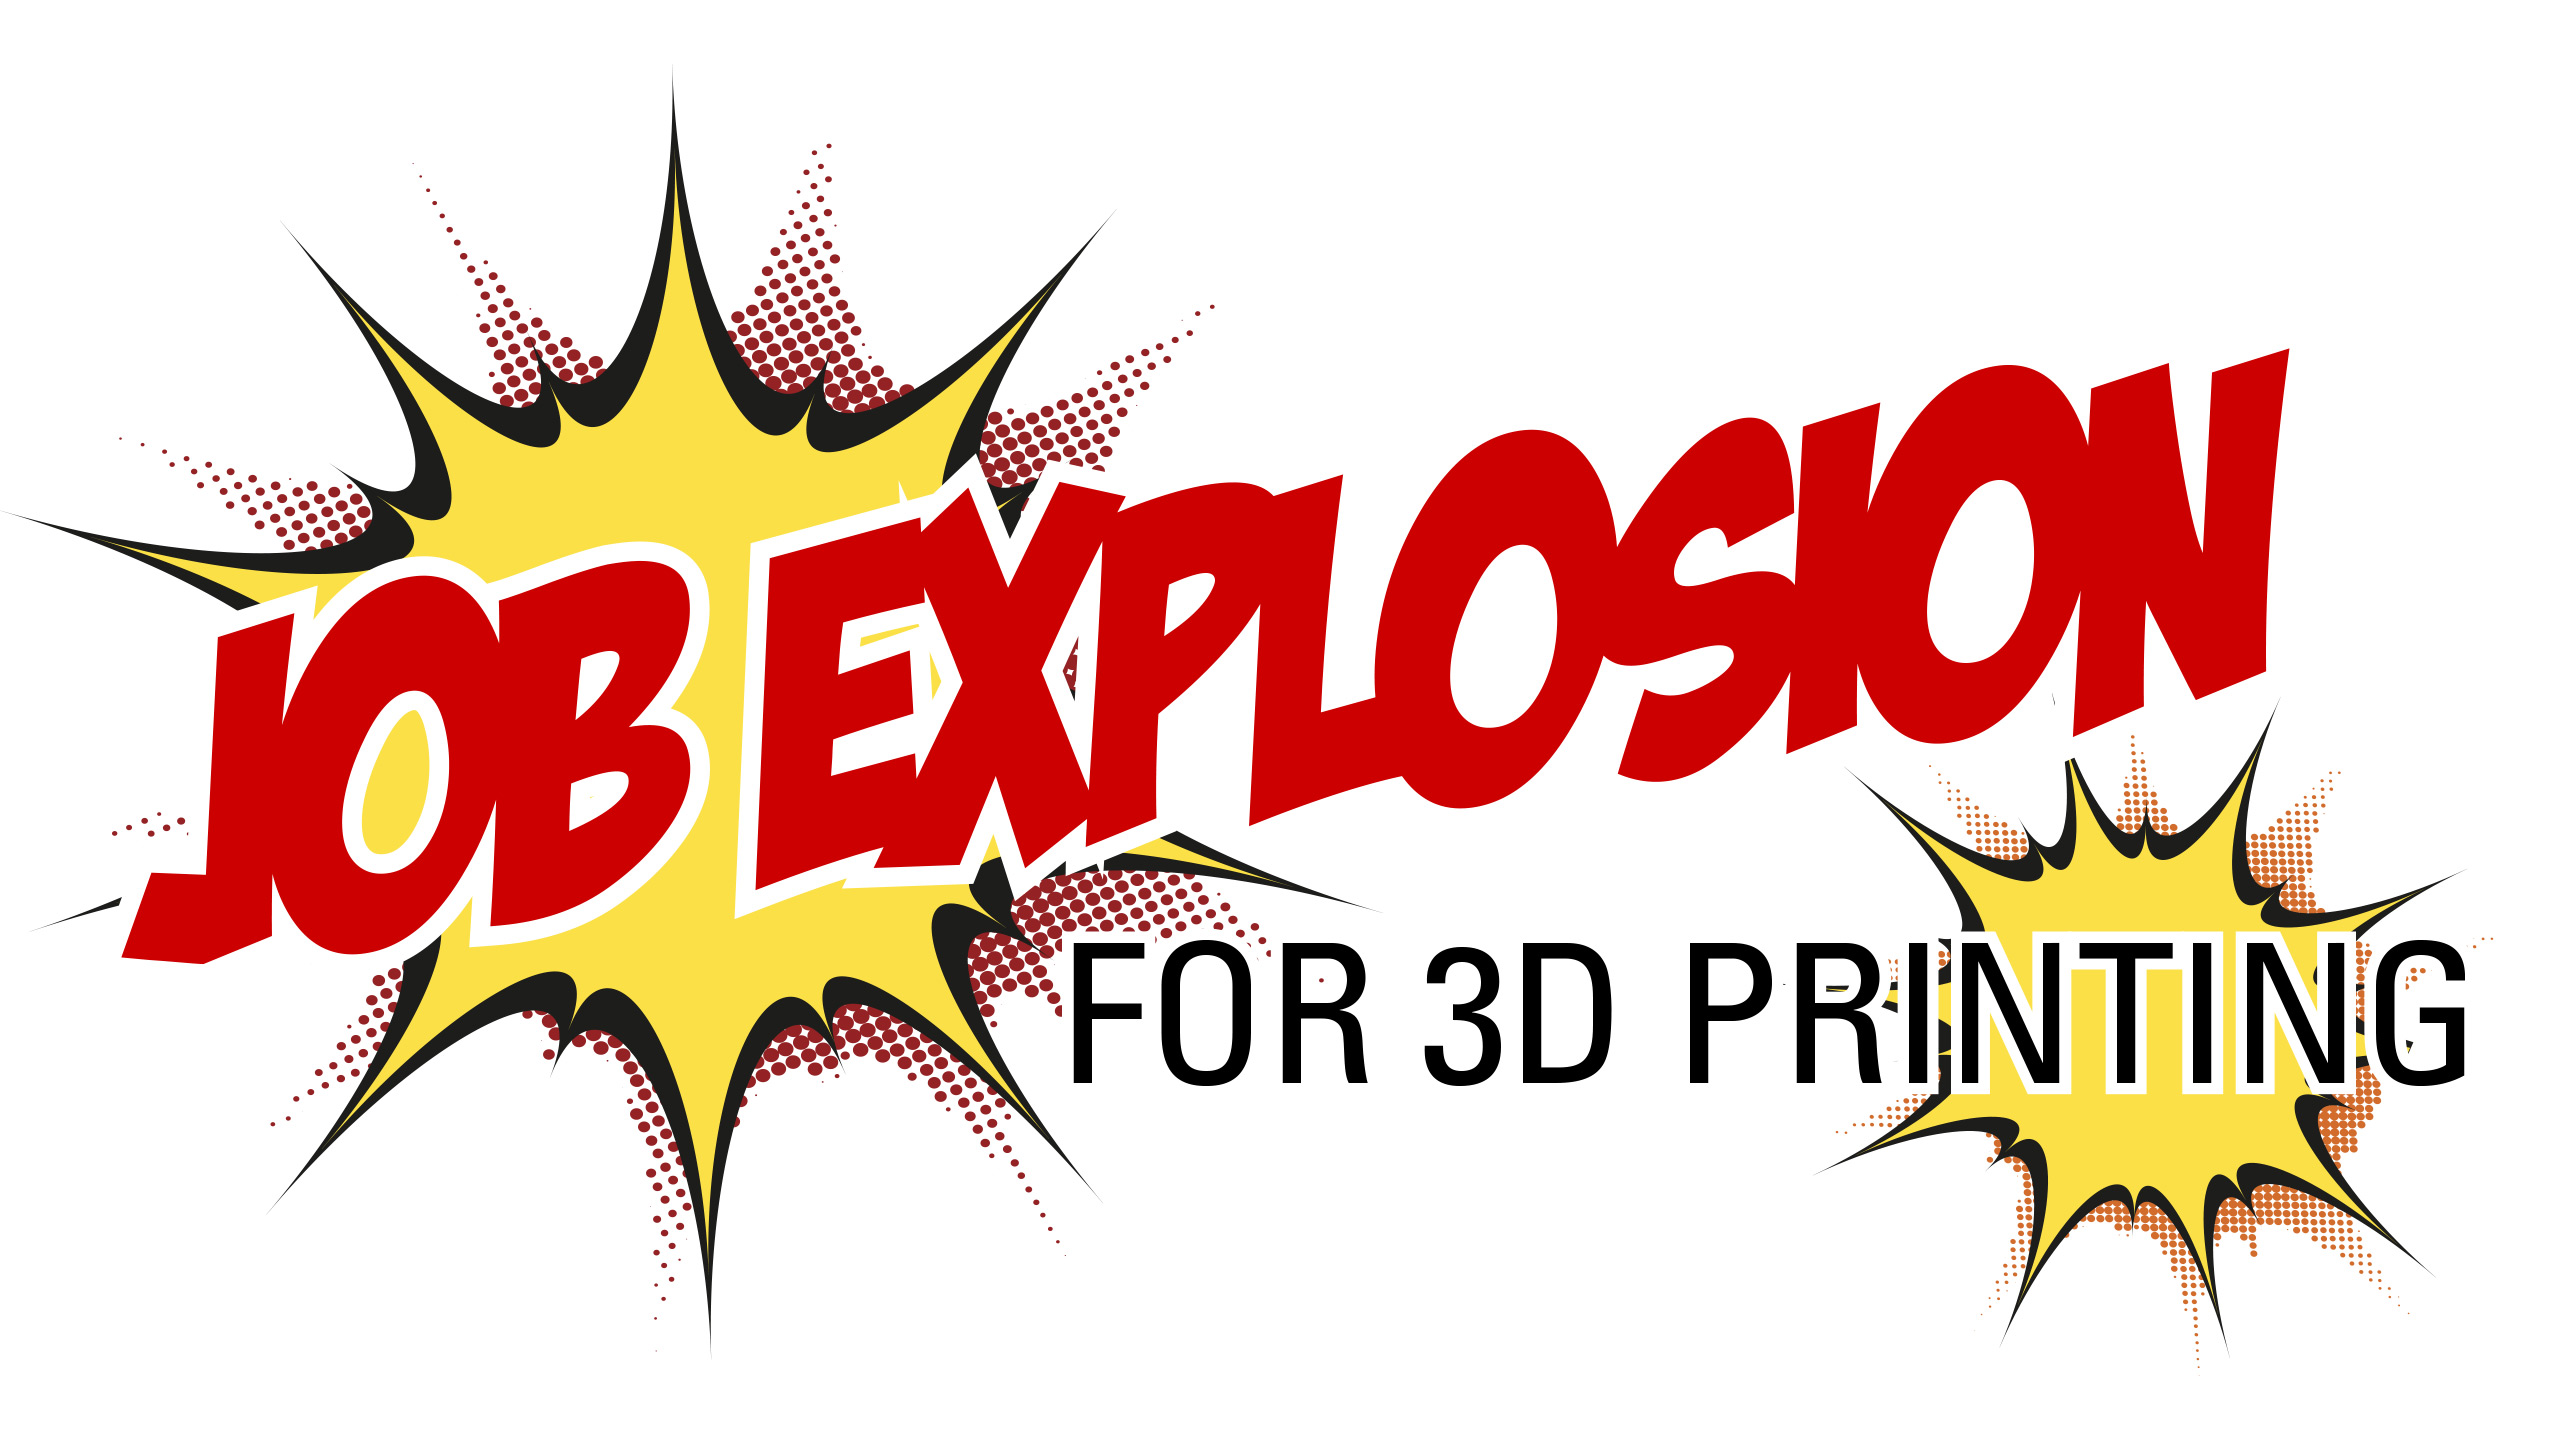 Job Explosion for 3D Printing